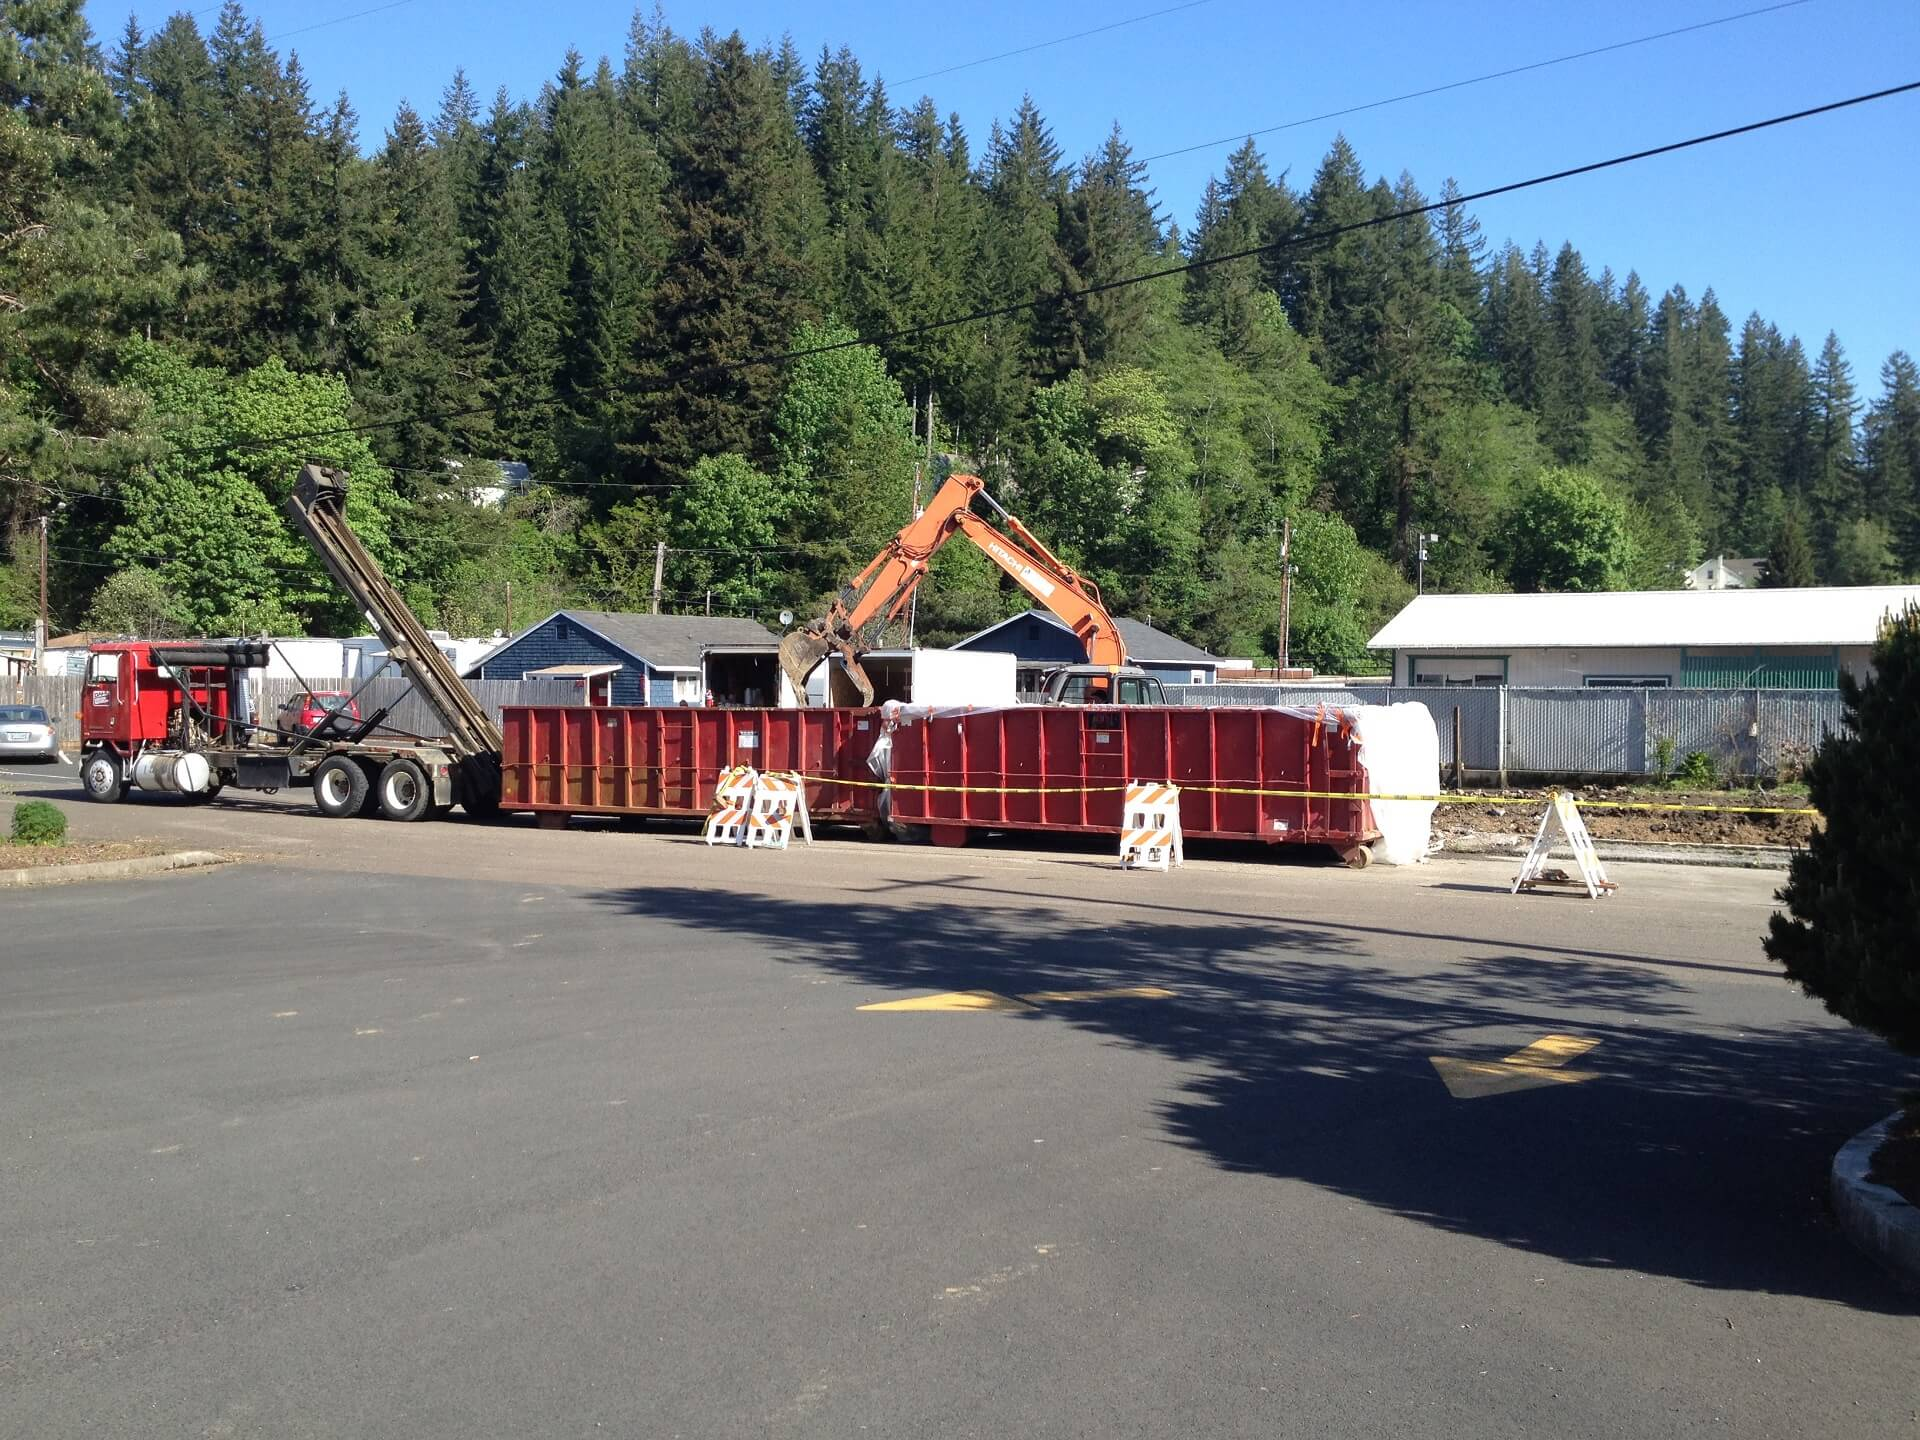 Asbestos Abatement Dumpster Services - Fort Collins Exclusive Dumpster Rental Services & Roll Offs Providers